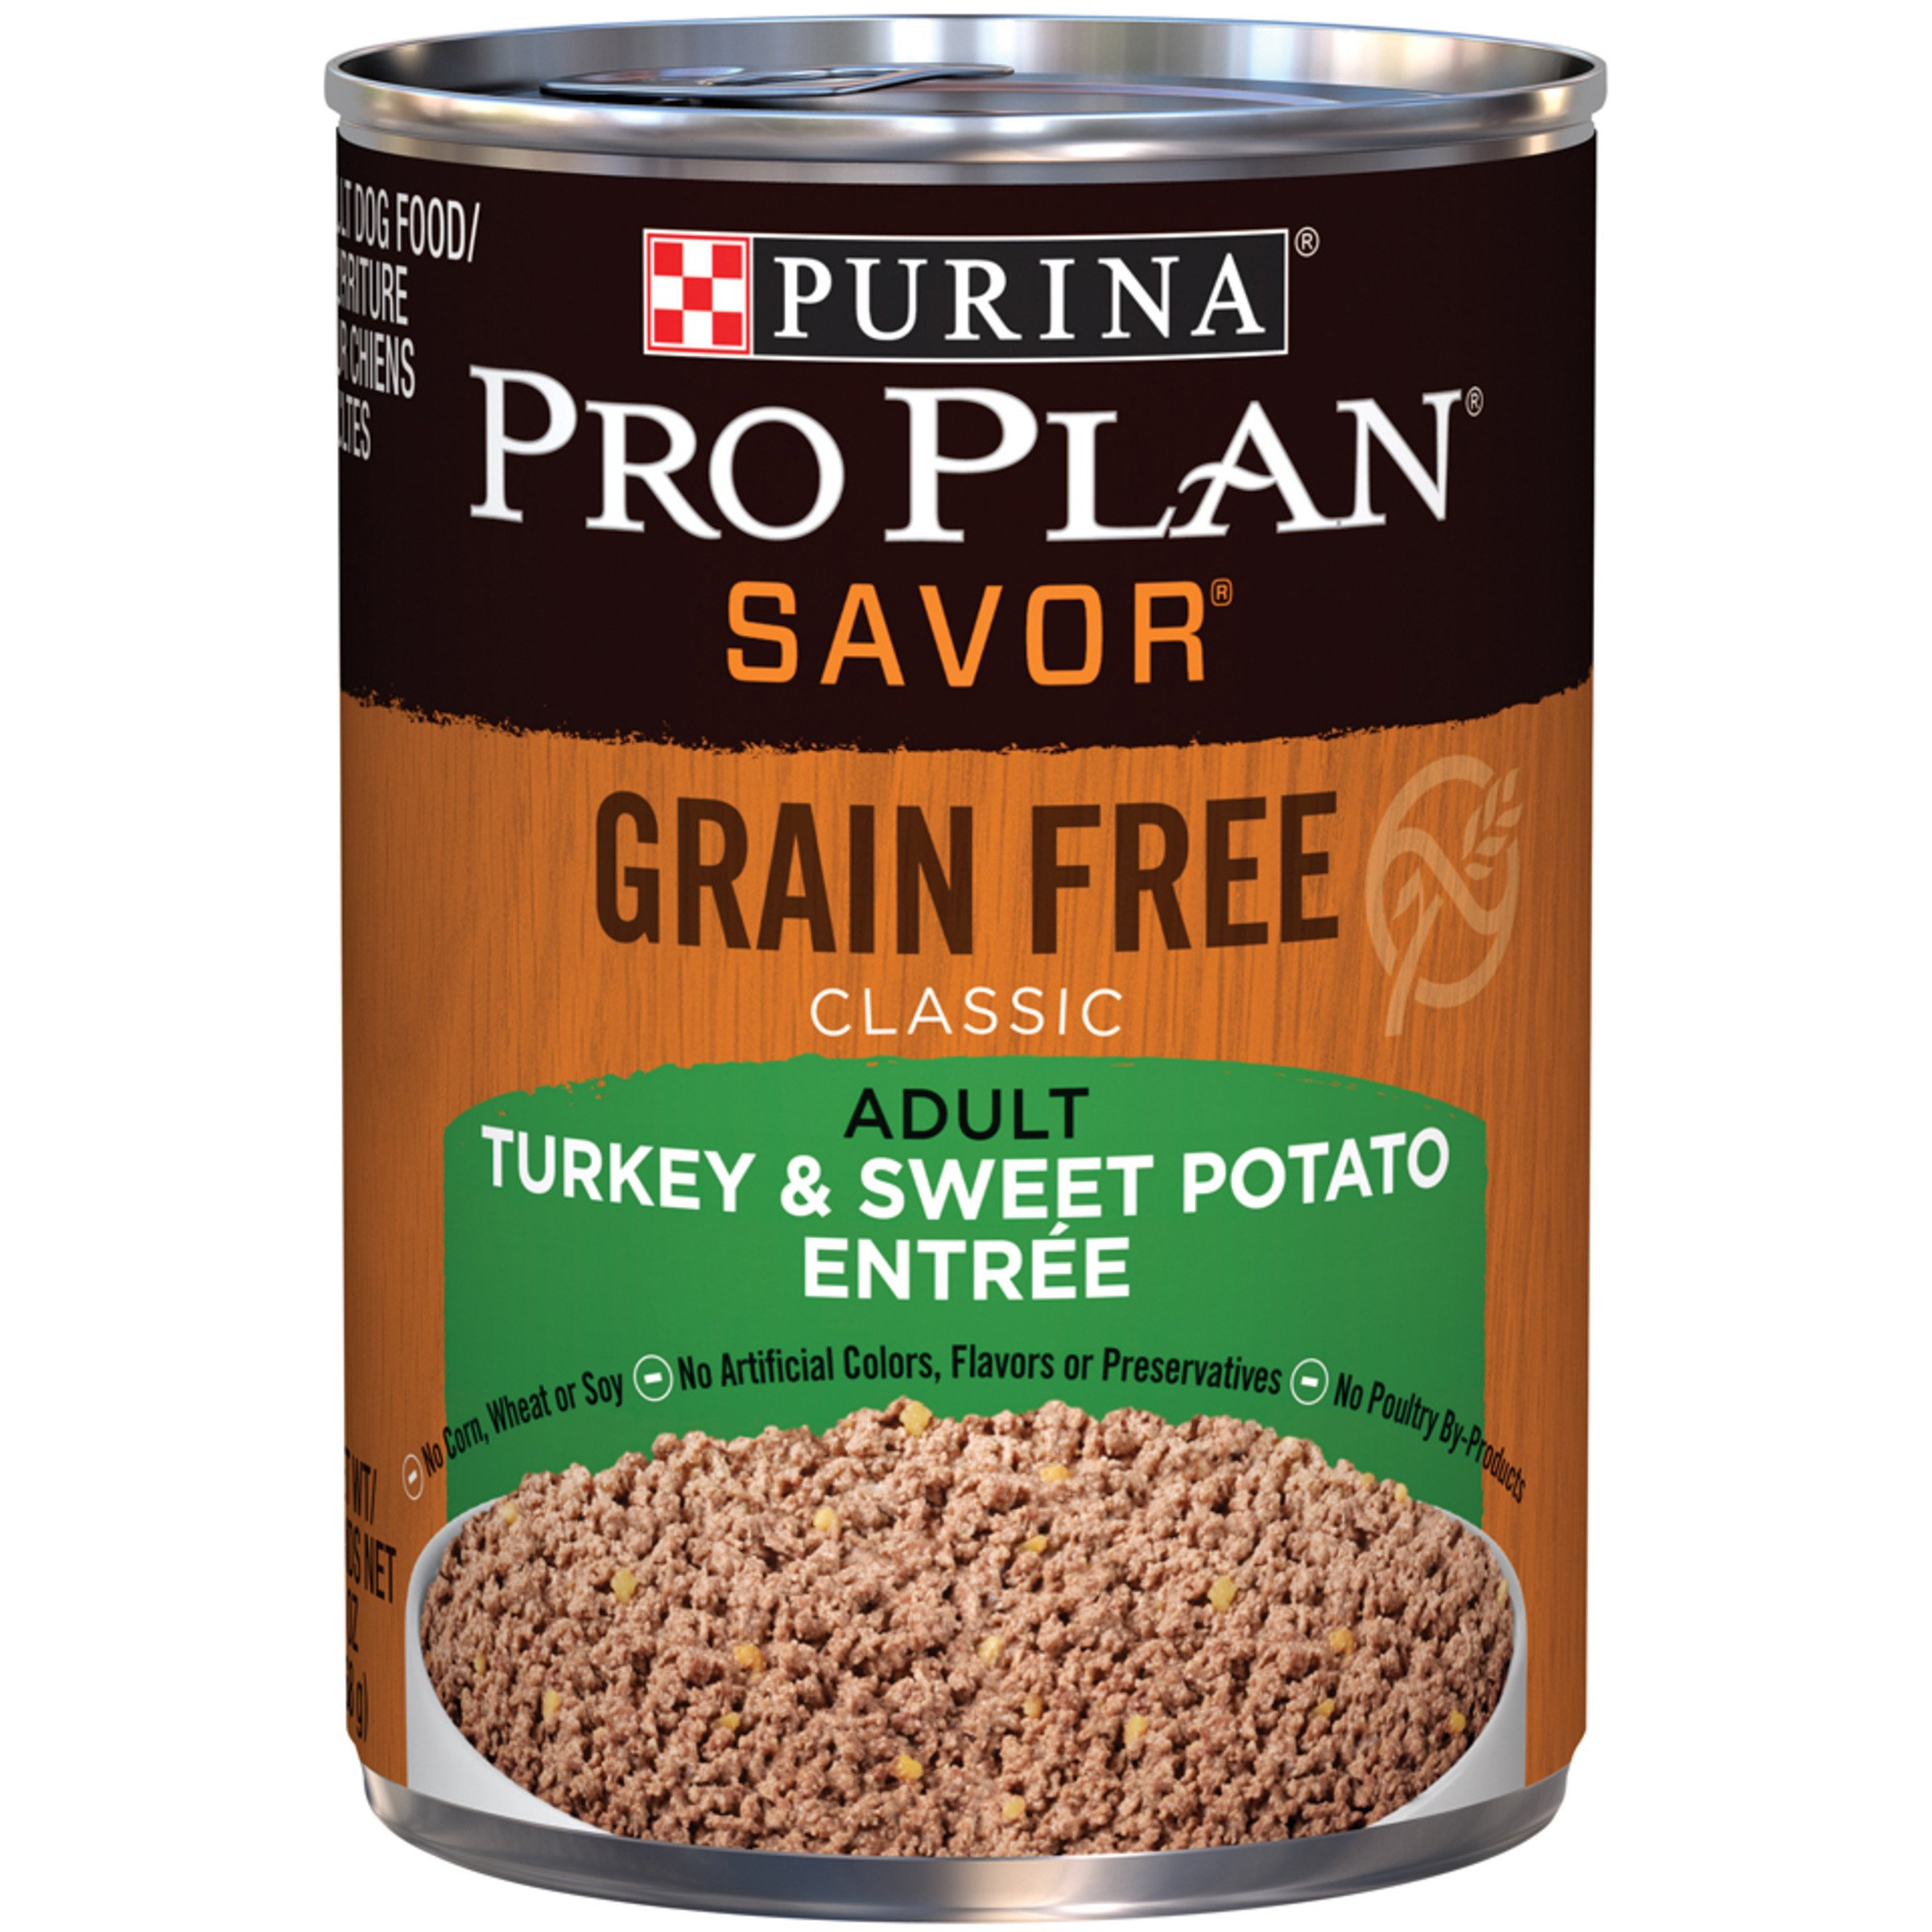 Purina Pro Plan Grain Free Pate Wet Dog Food, SAVOR Grain Free Turkey & Sweet Potato Entree - (12) 13 oz. Cans